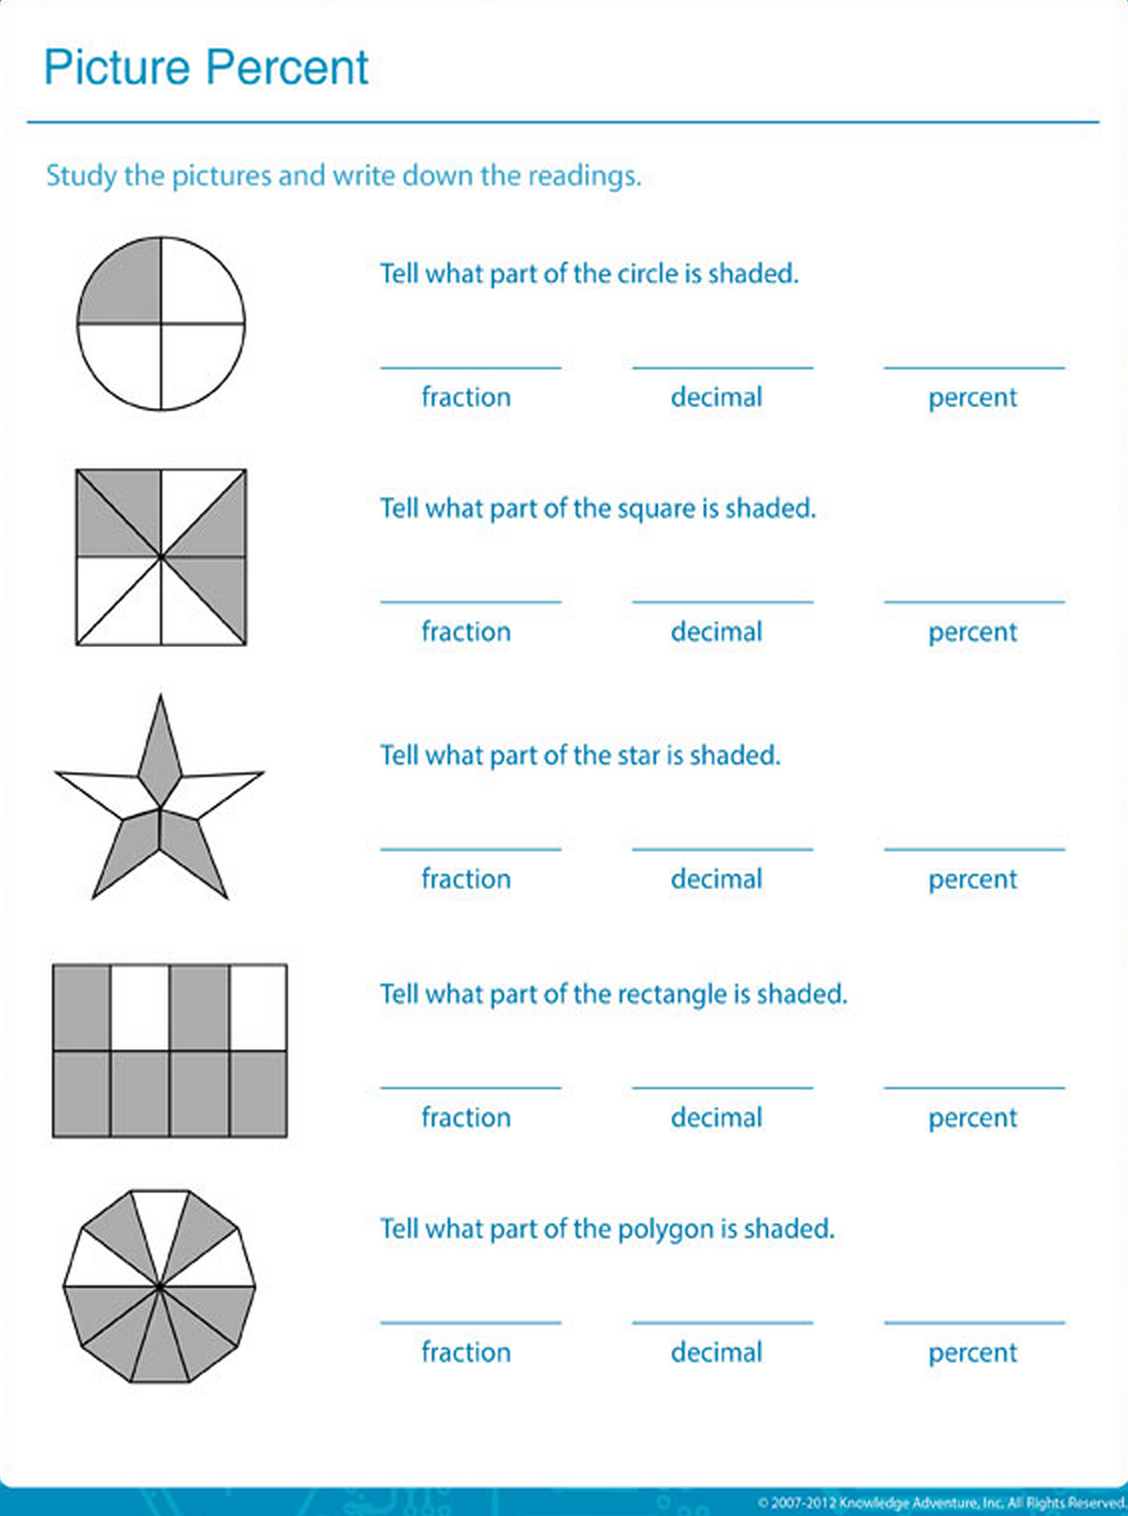 Worksheets Area Of Shaded Region Worksheet write down the shaded area in fractions decimals and percentages percentages